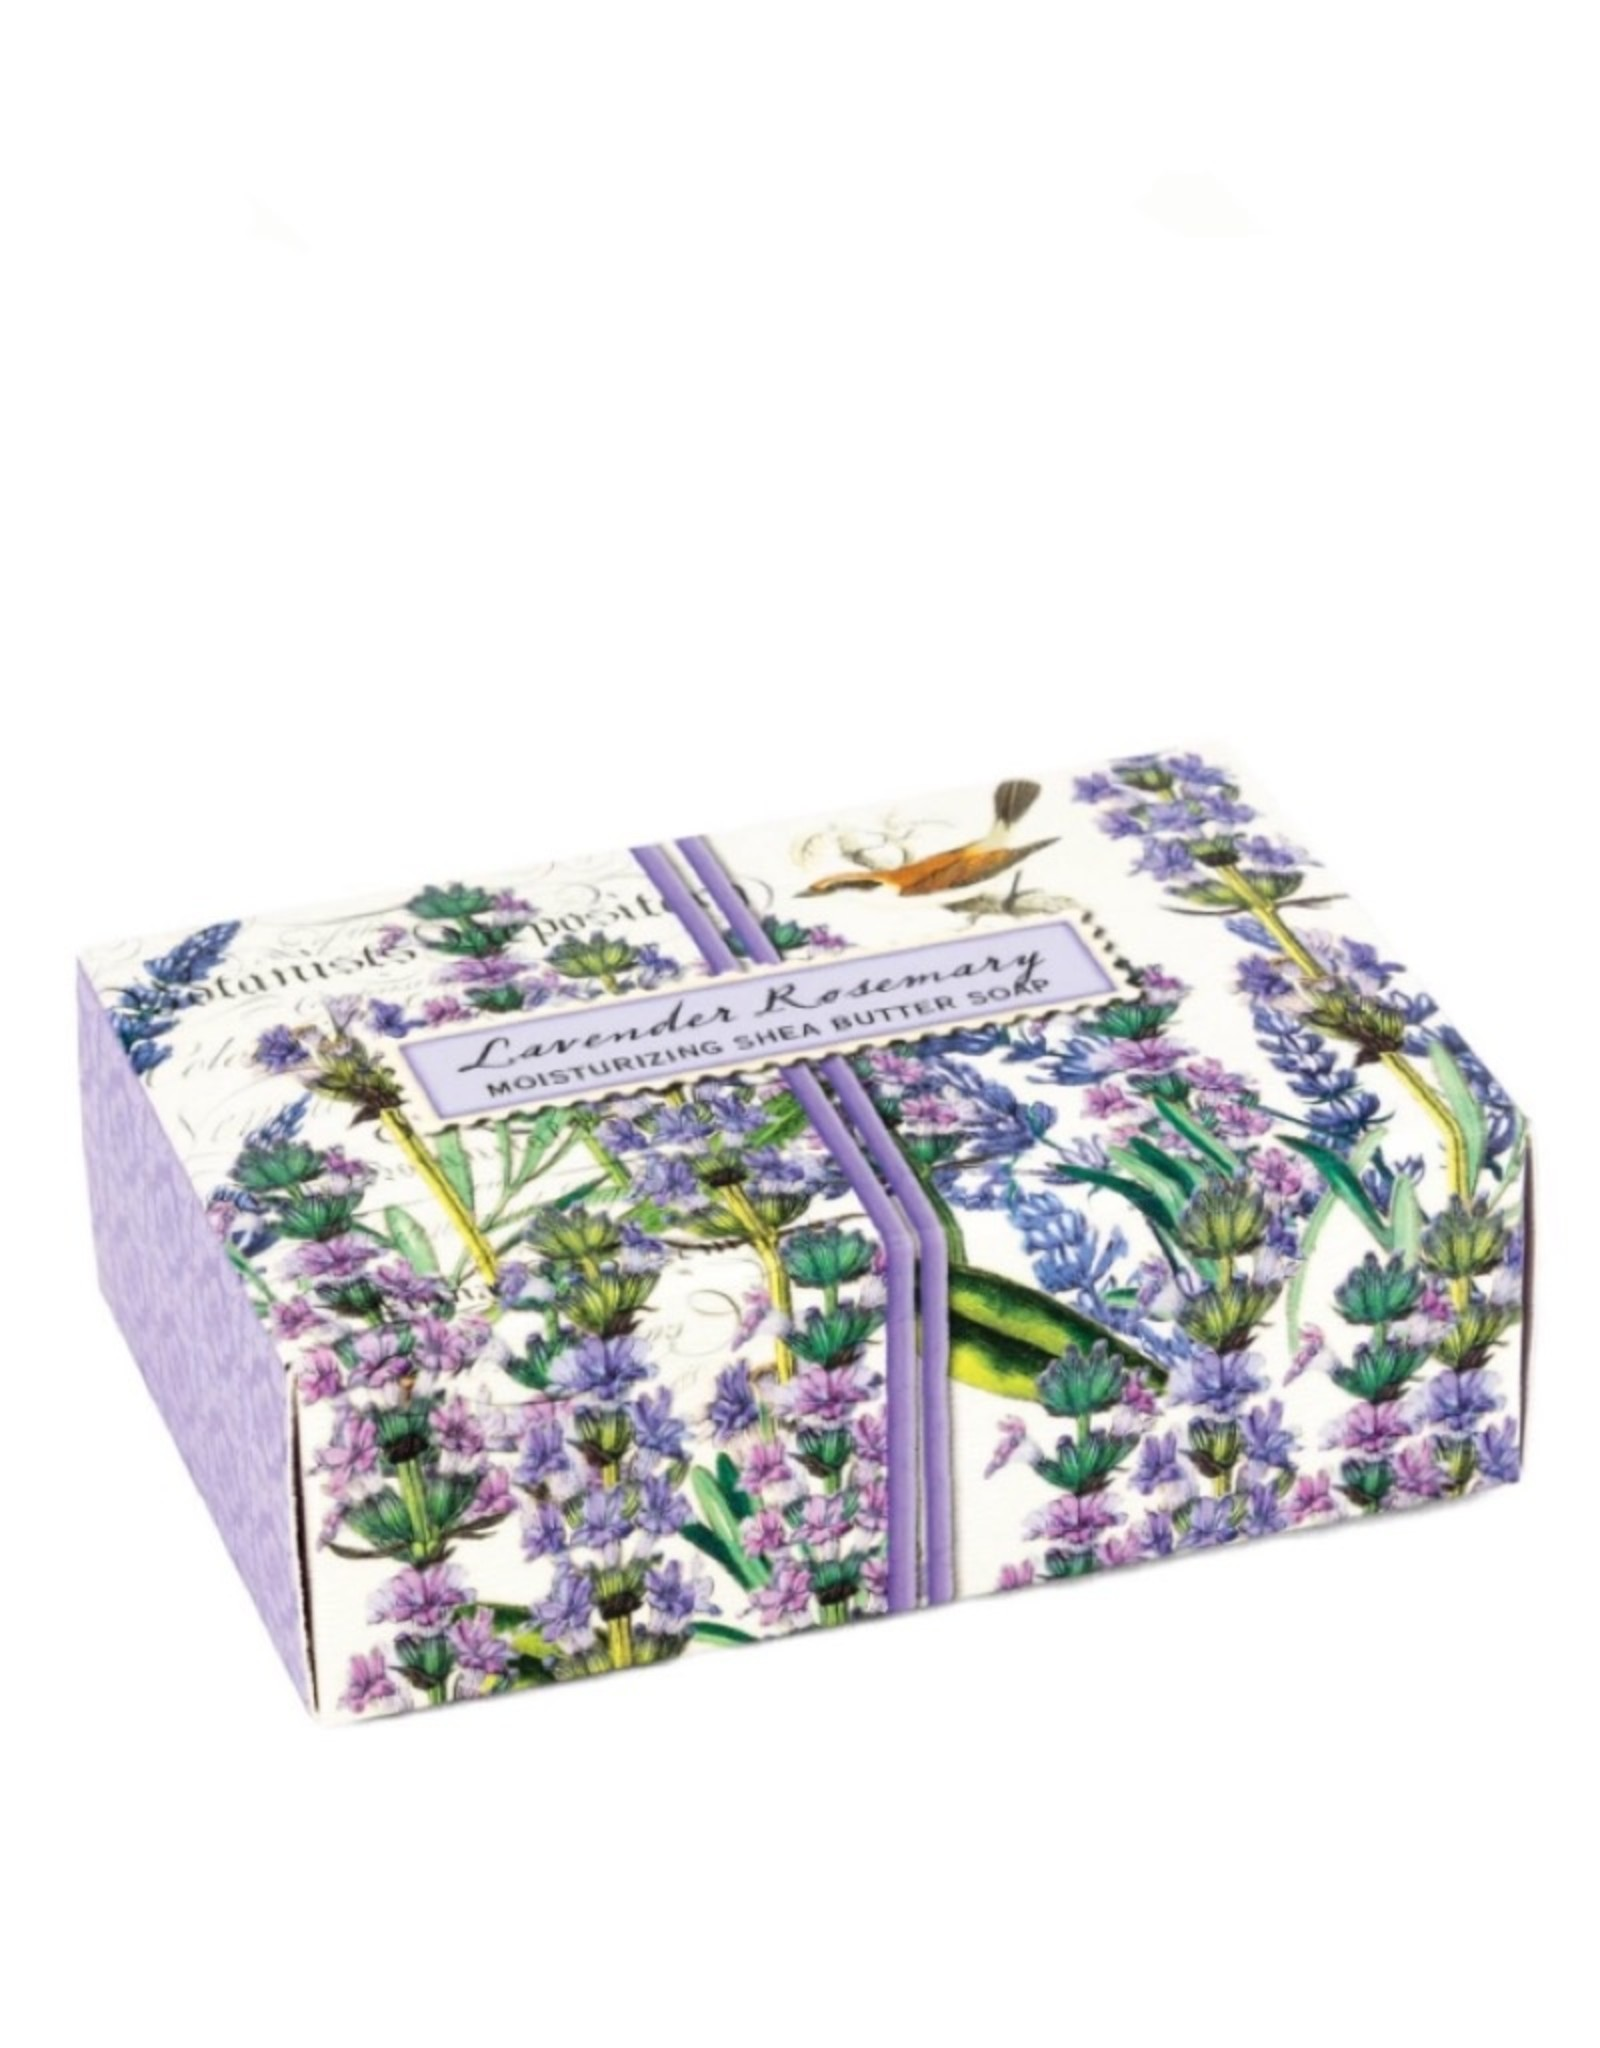 SOAX81 Lavender Rosemary 4.5 Oz Boxed Soap